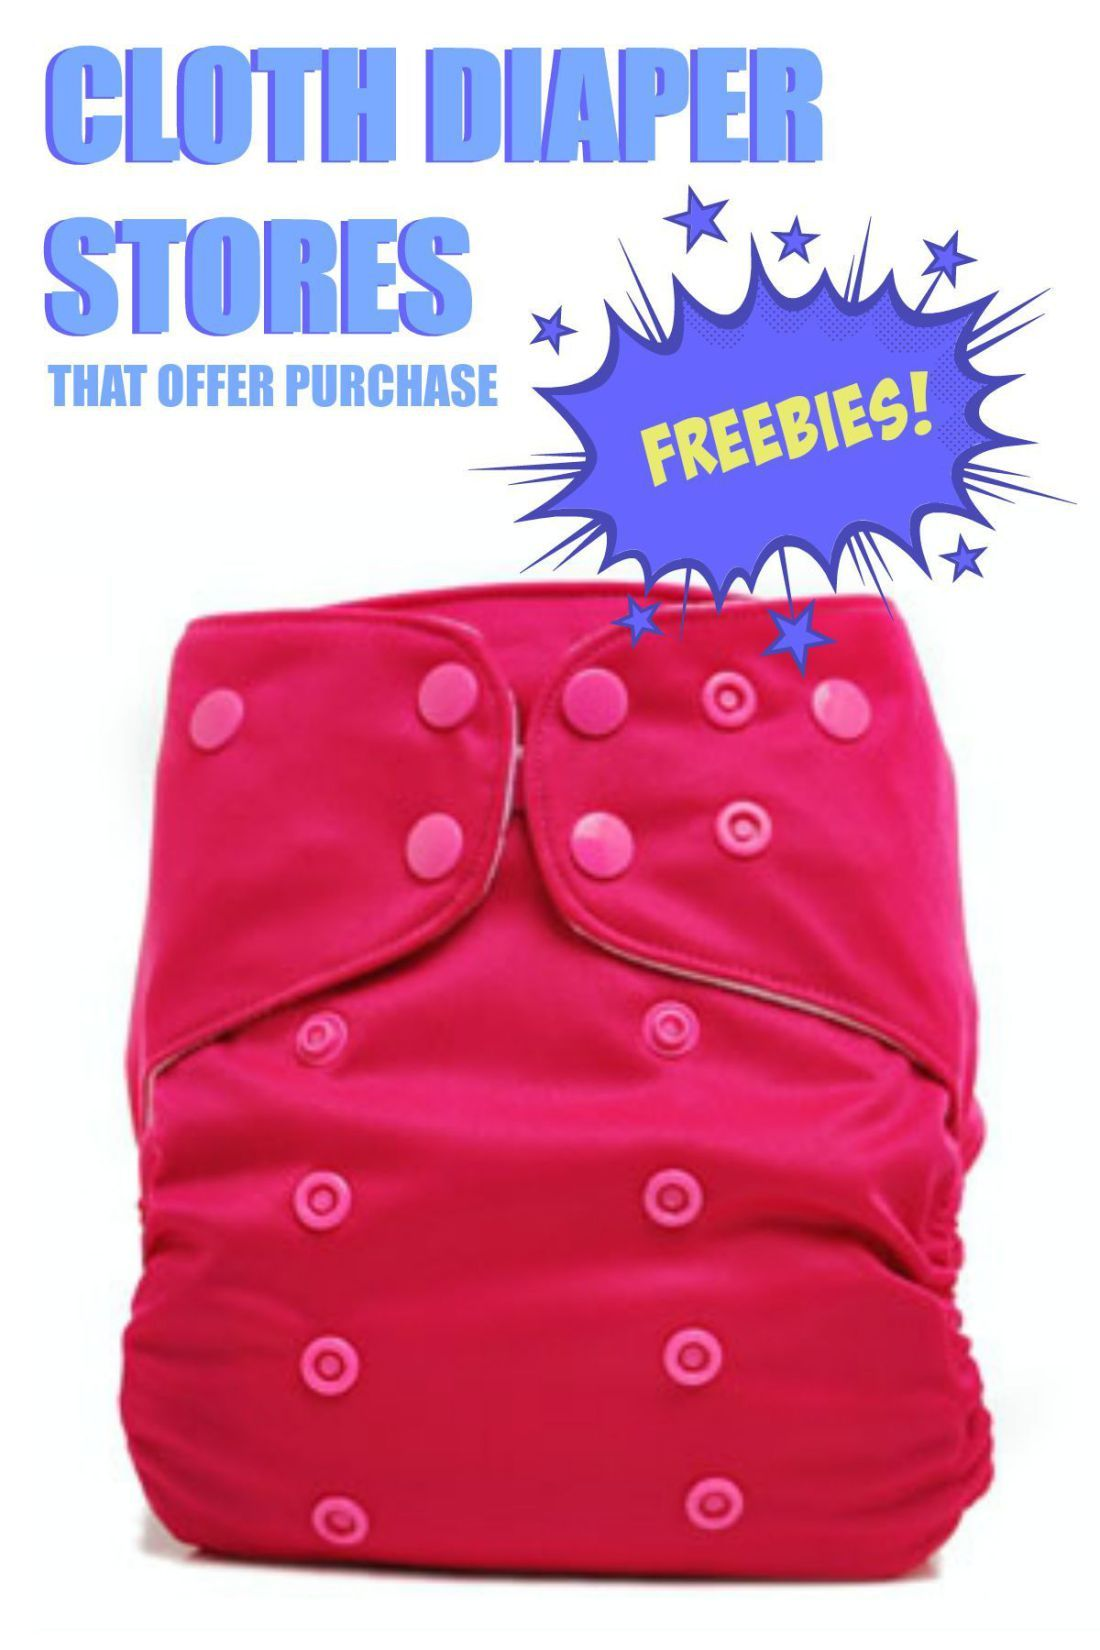 Cloth diaper store freebies - a list of stores that offer free products with a minimum purchase